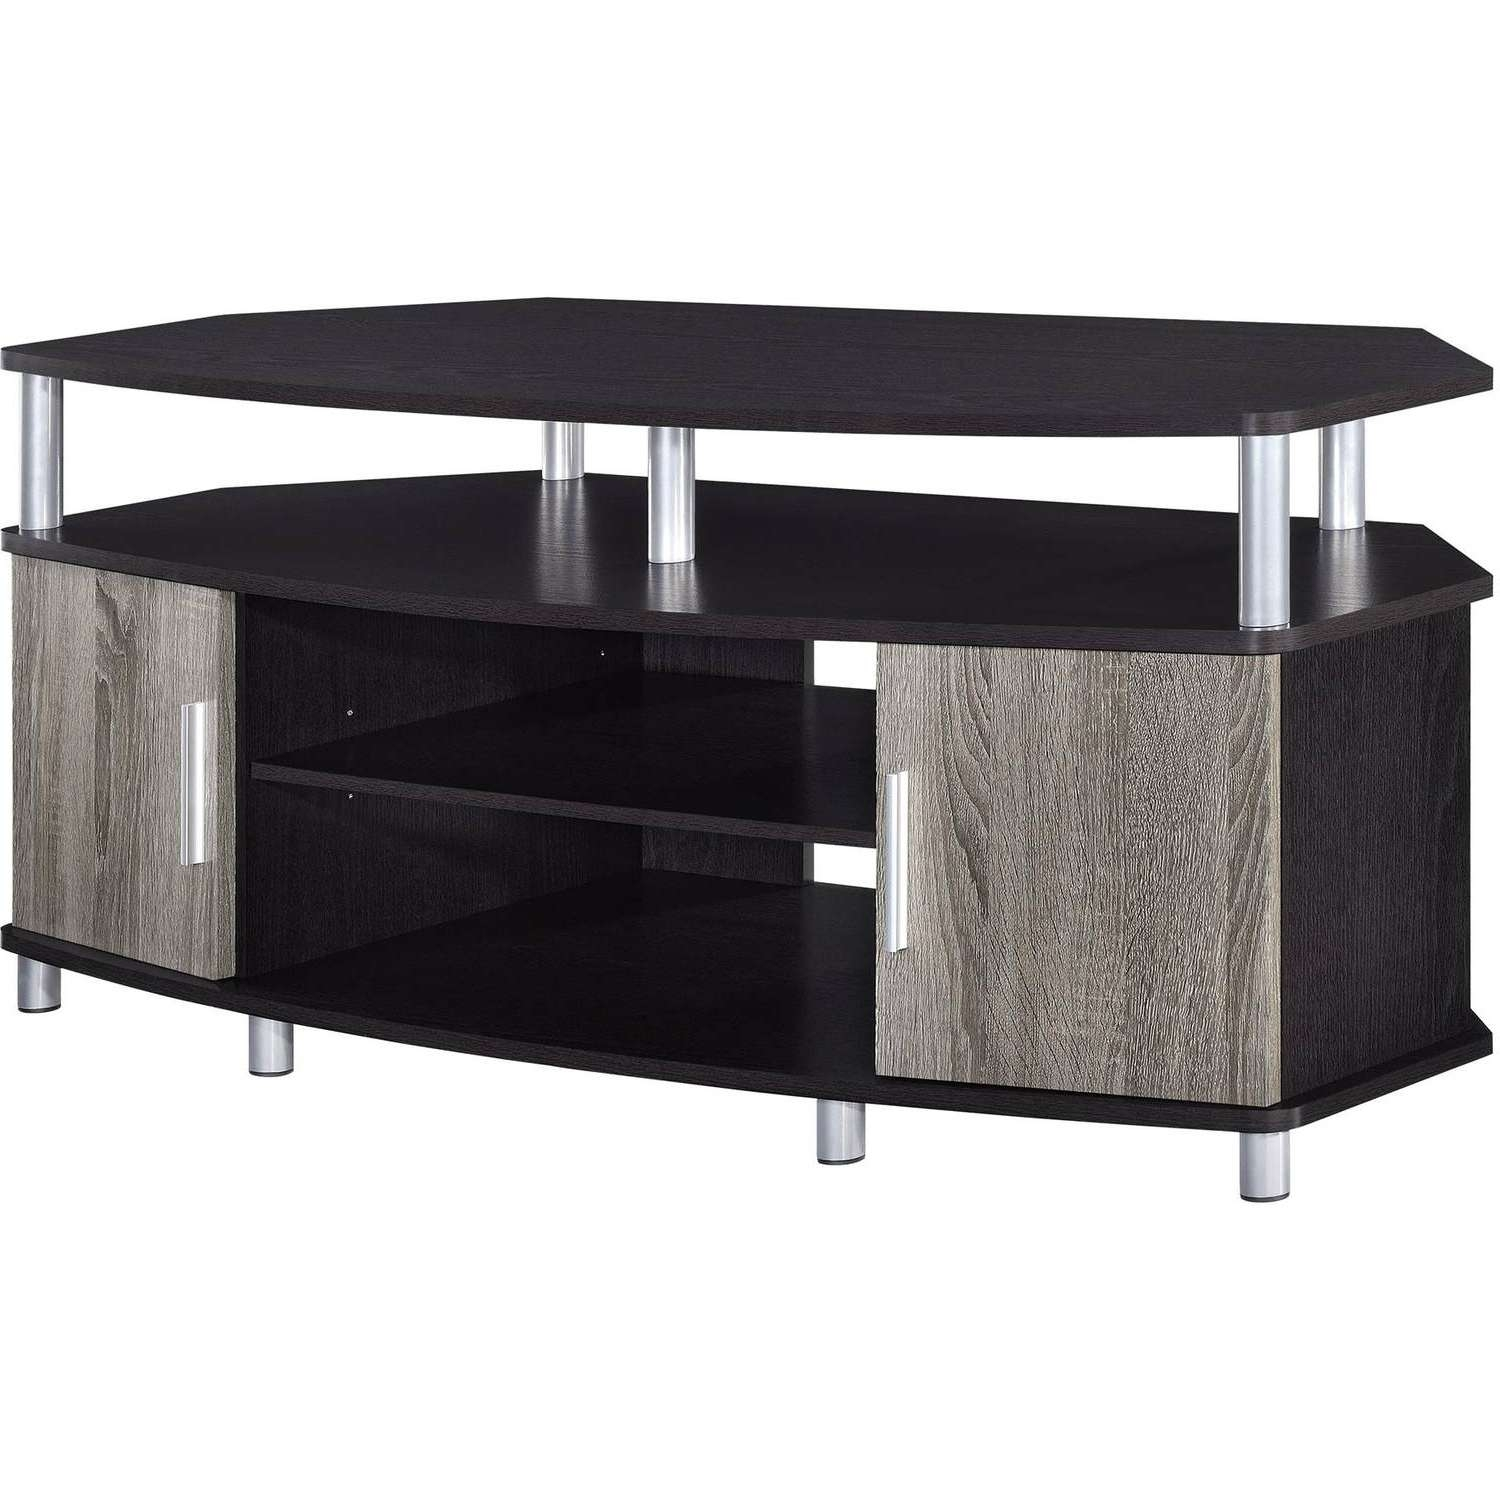 Tv : B Amazing Low Corner Tv Stands Impressive Low Corner Tv Stand Pertaining To Low Corner Tv Stands (View 10 of 15)